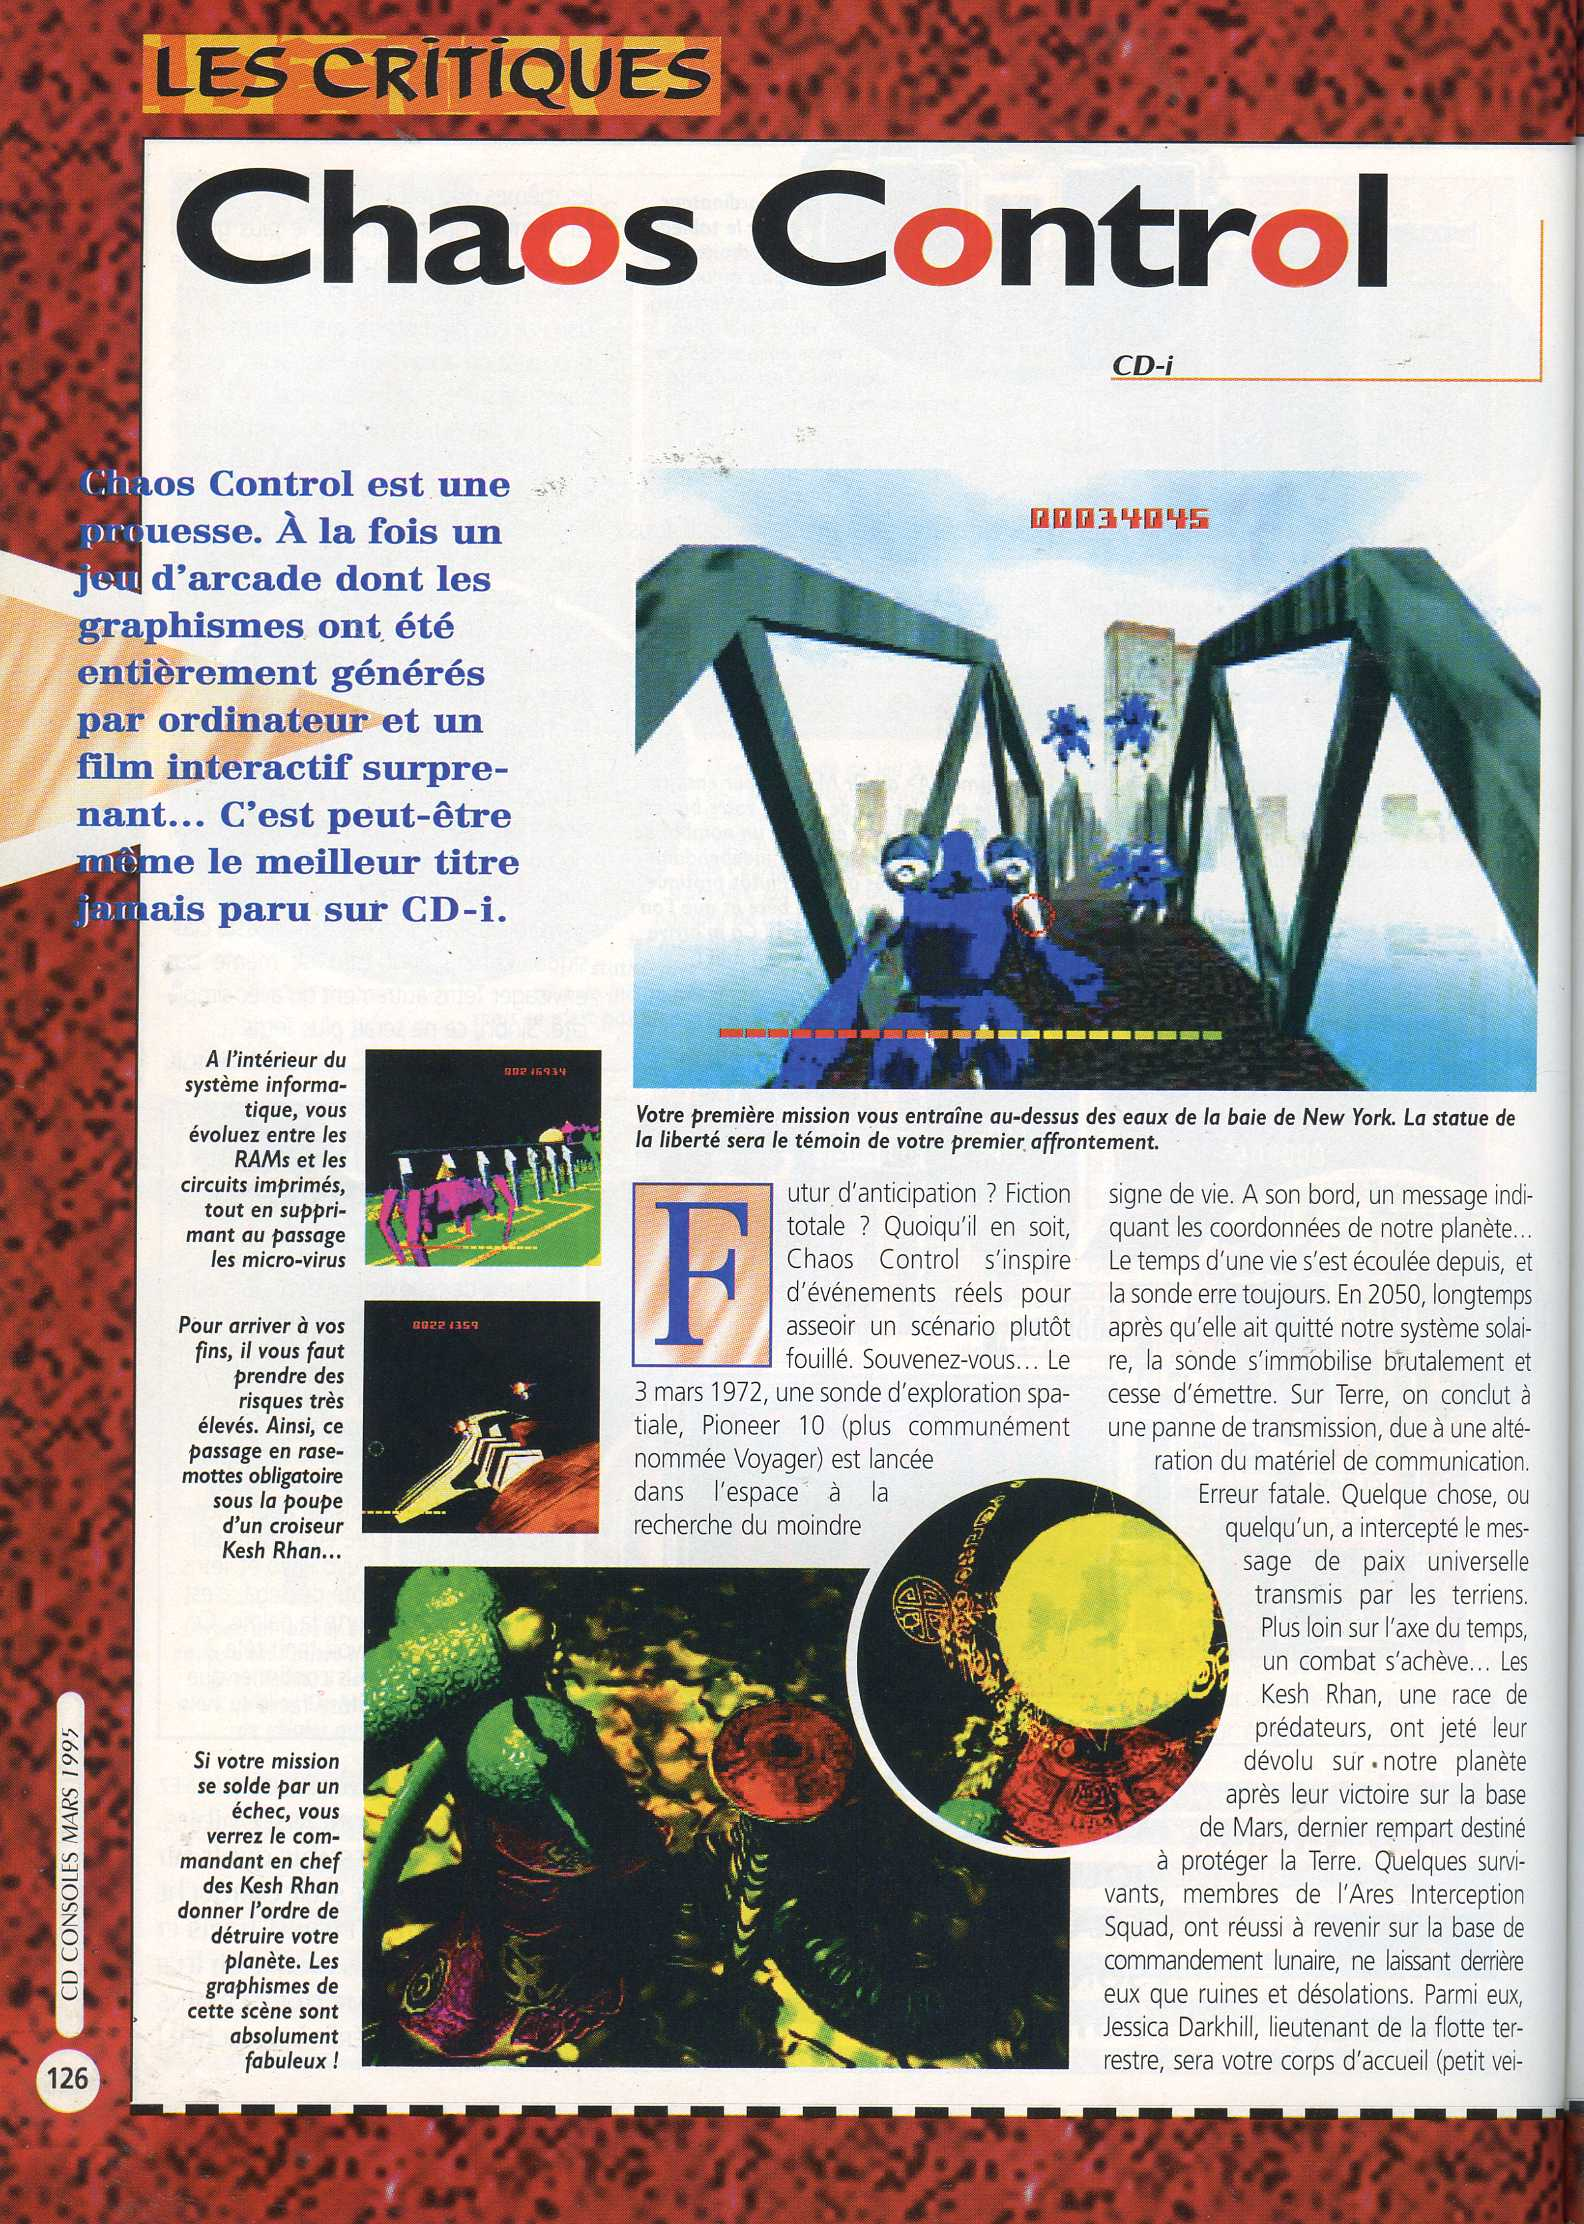 http://download.abandonware.org/magazines/CD%20Consoles/cdconsoles_numero05/Page%20126.jpg